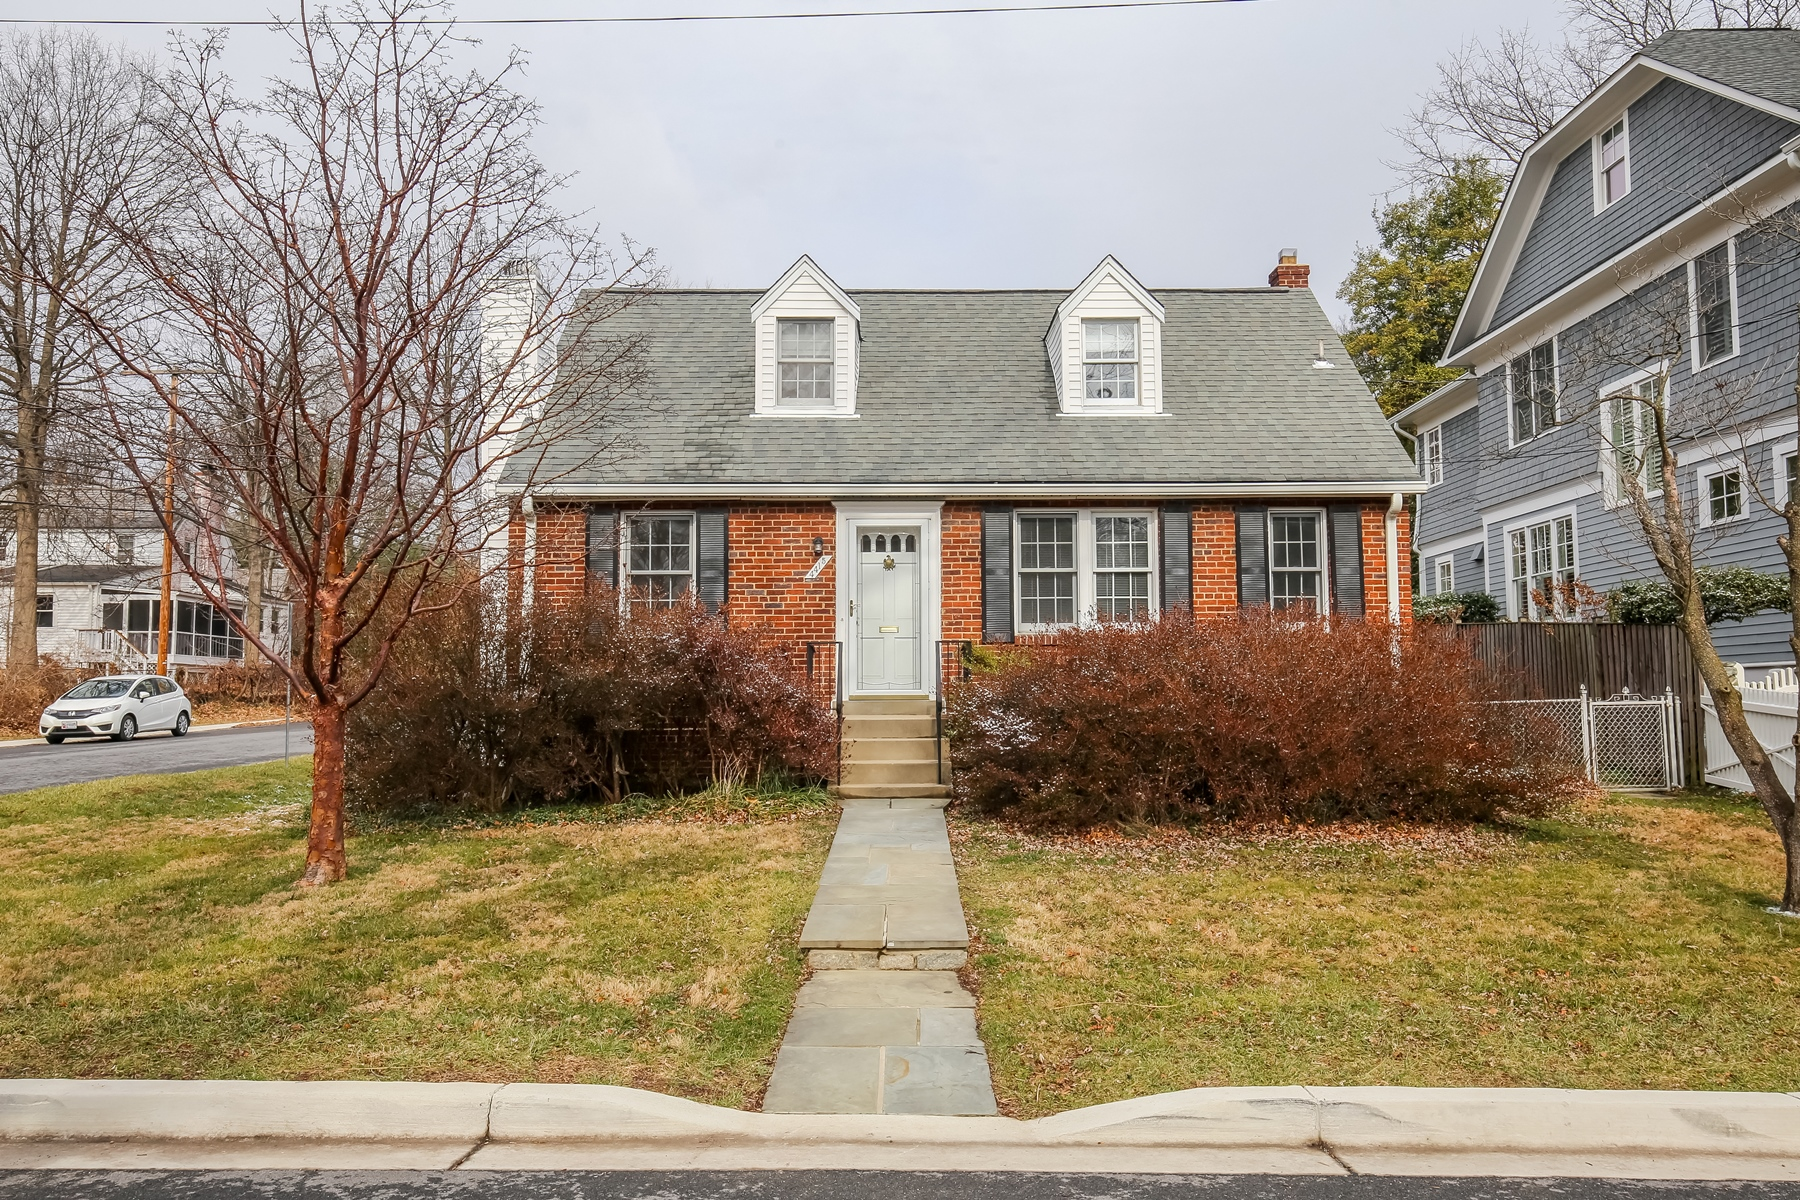 Single Family Home for Sale at 4415 West Virginia Avenue, Bethesda Bethesda, Maryland, 20814 United States